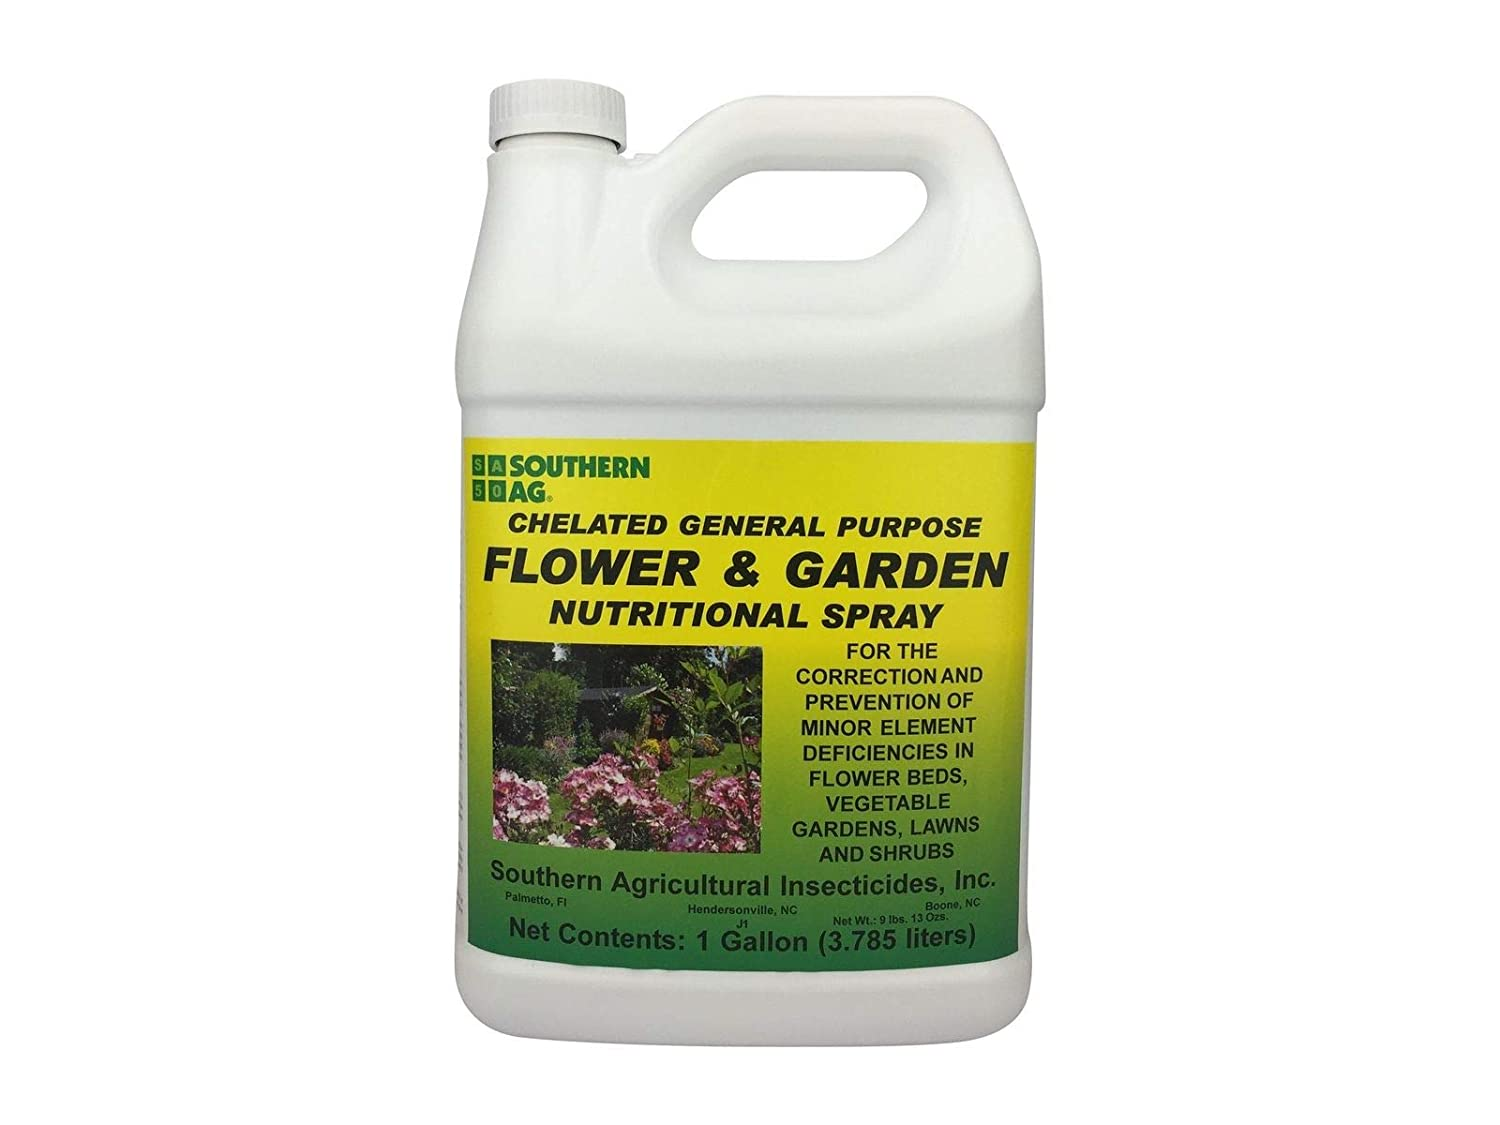 Southern Ag Chelated General Purpose Flower & Garden Nutritional Spray, 1 Gallon